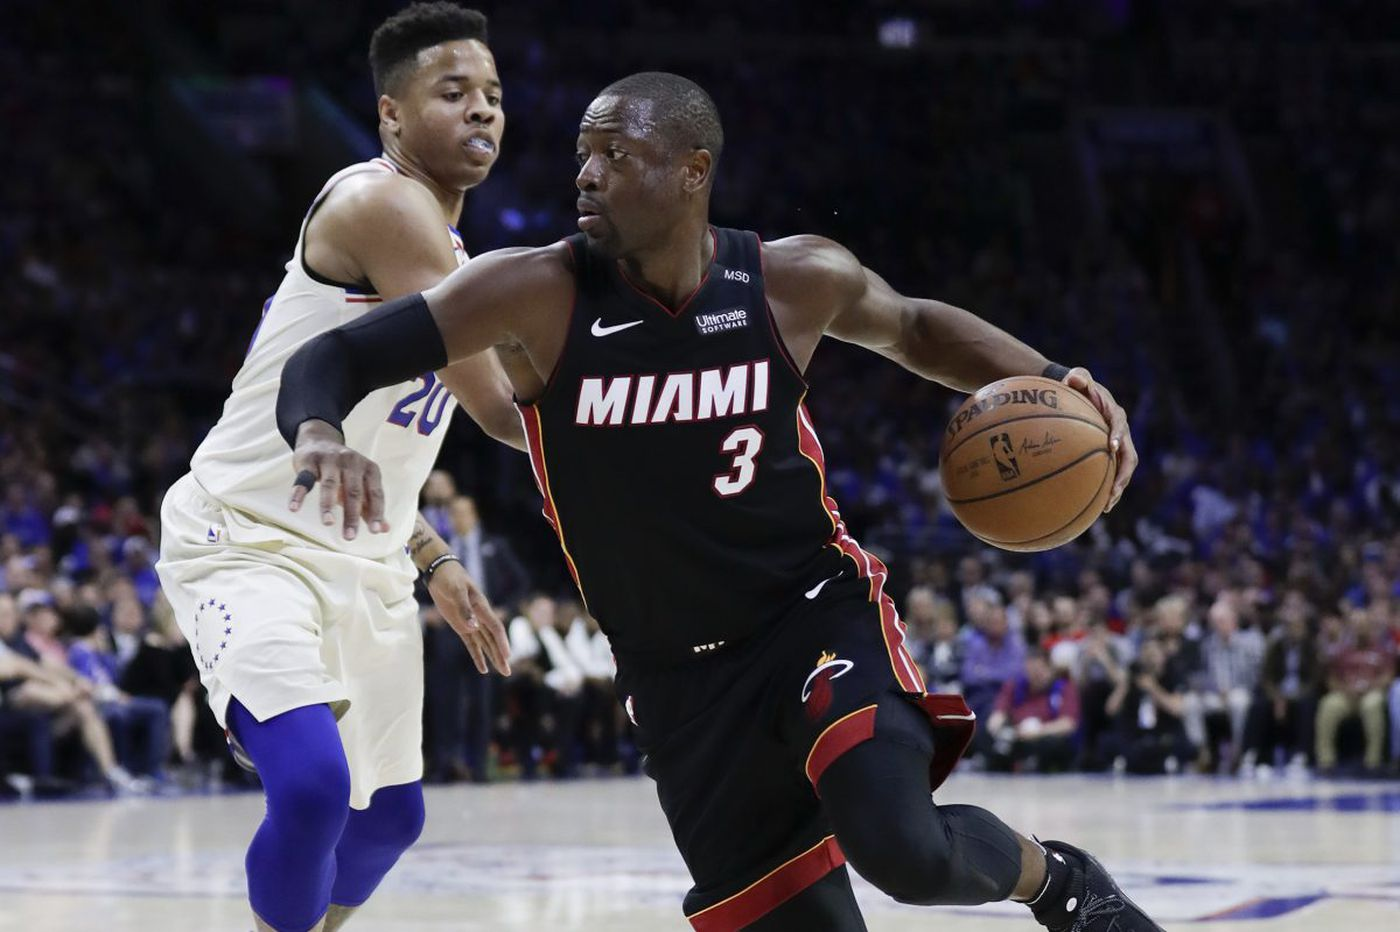 Dwyane Wade weighs in on matchups in Sixers-Heat NBA playoff series, has high praise for Ben Simmons